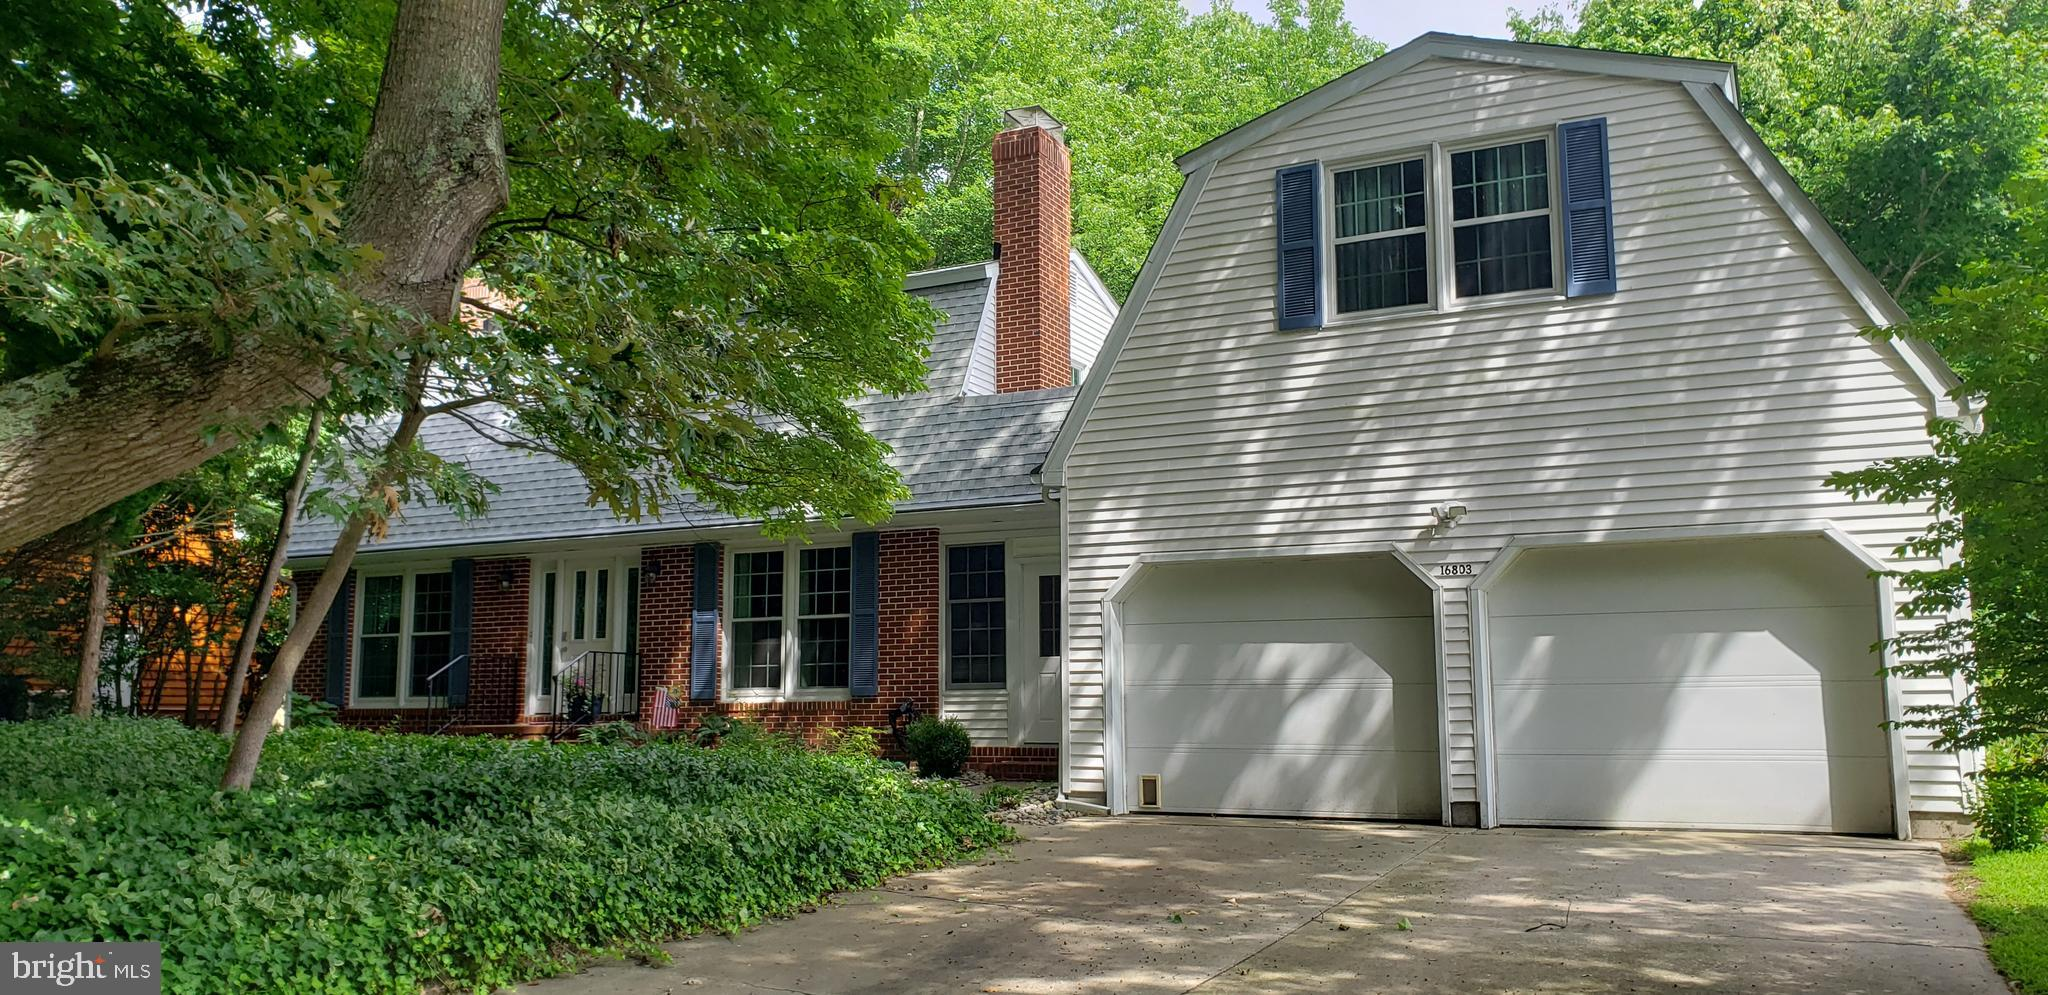 Lewes address, water access, bike trail access! This home and location will wow you from the two fir